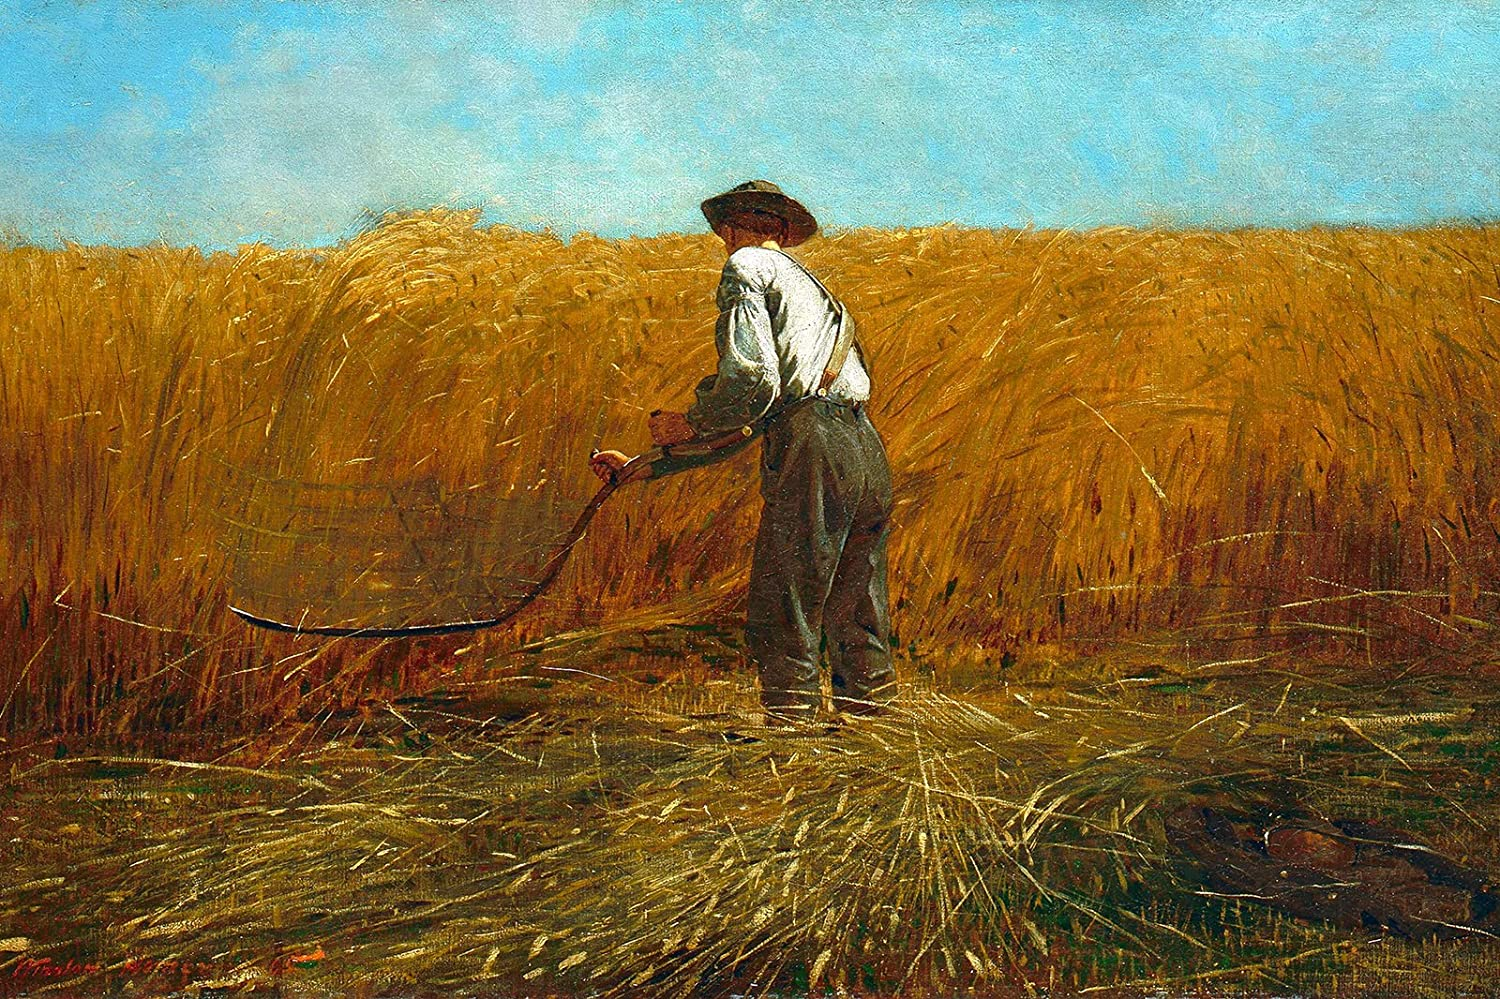 Winslow Homer - The Veteran in a New Field (1865) - Classic Painting Photo Poster Print Art Gift Wall Home Decor - Farming Post Civil War // Size: 12 x 8 Inches